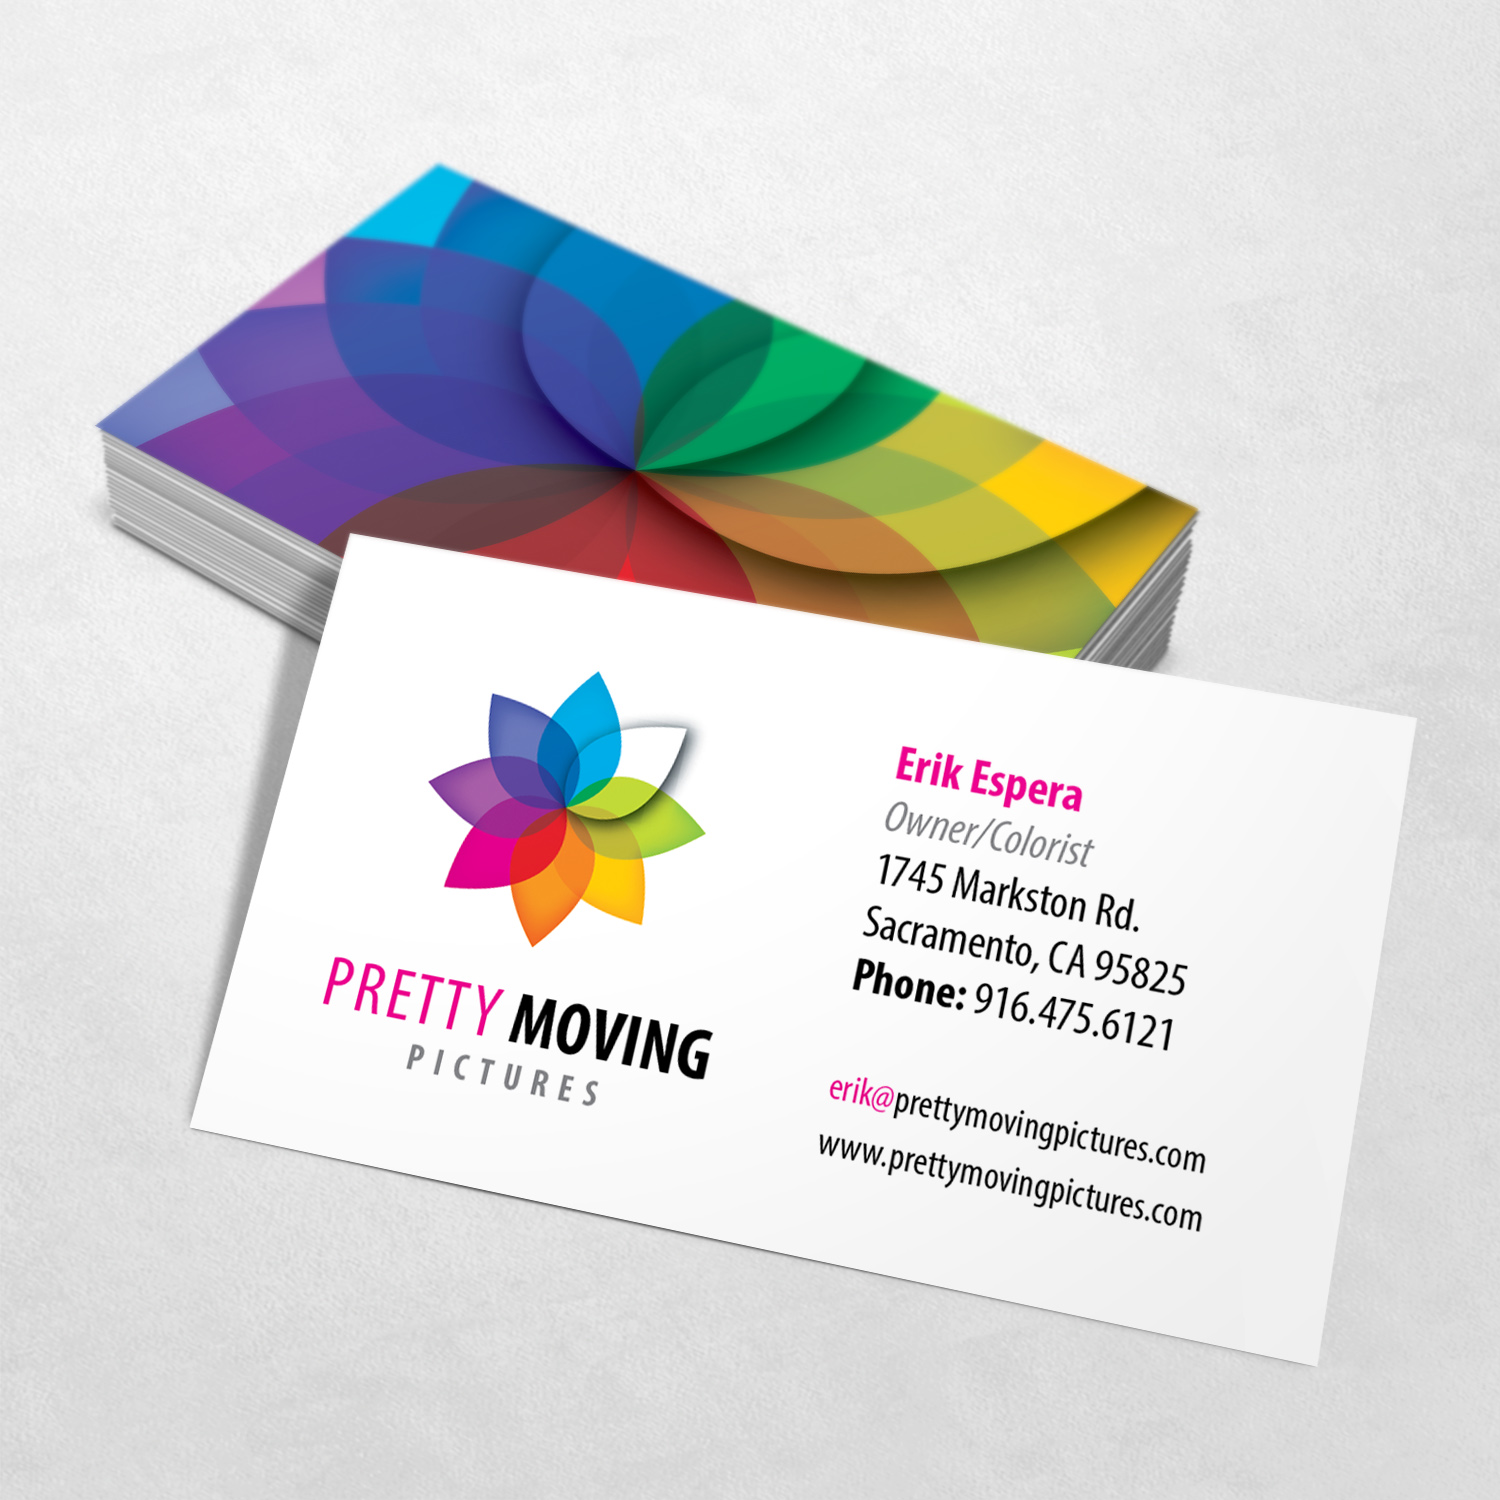 Pretty Moving Pictures Business Card Design